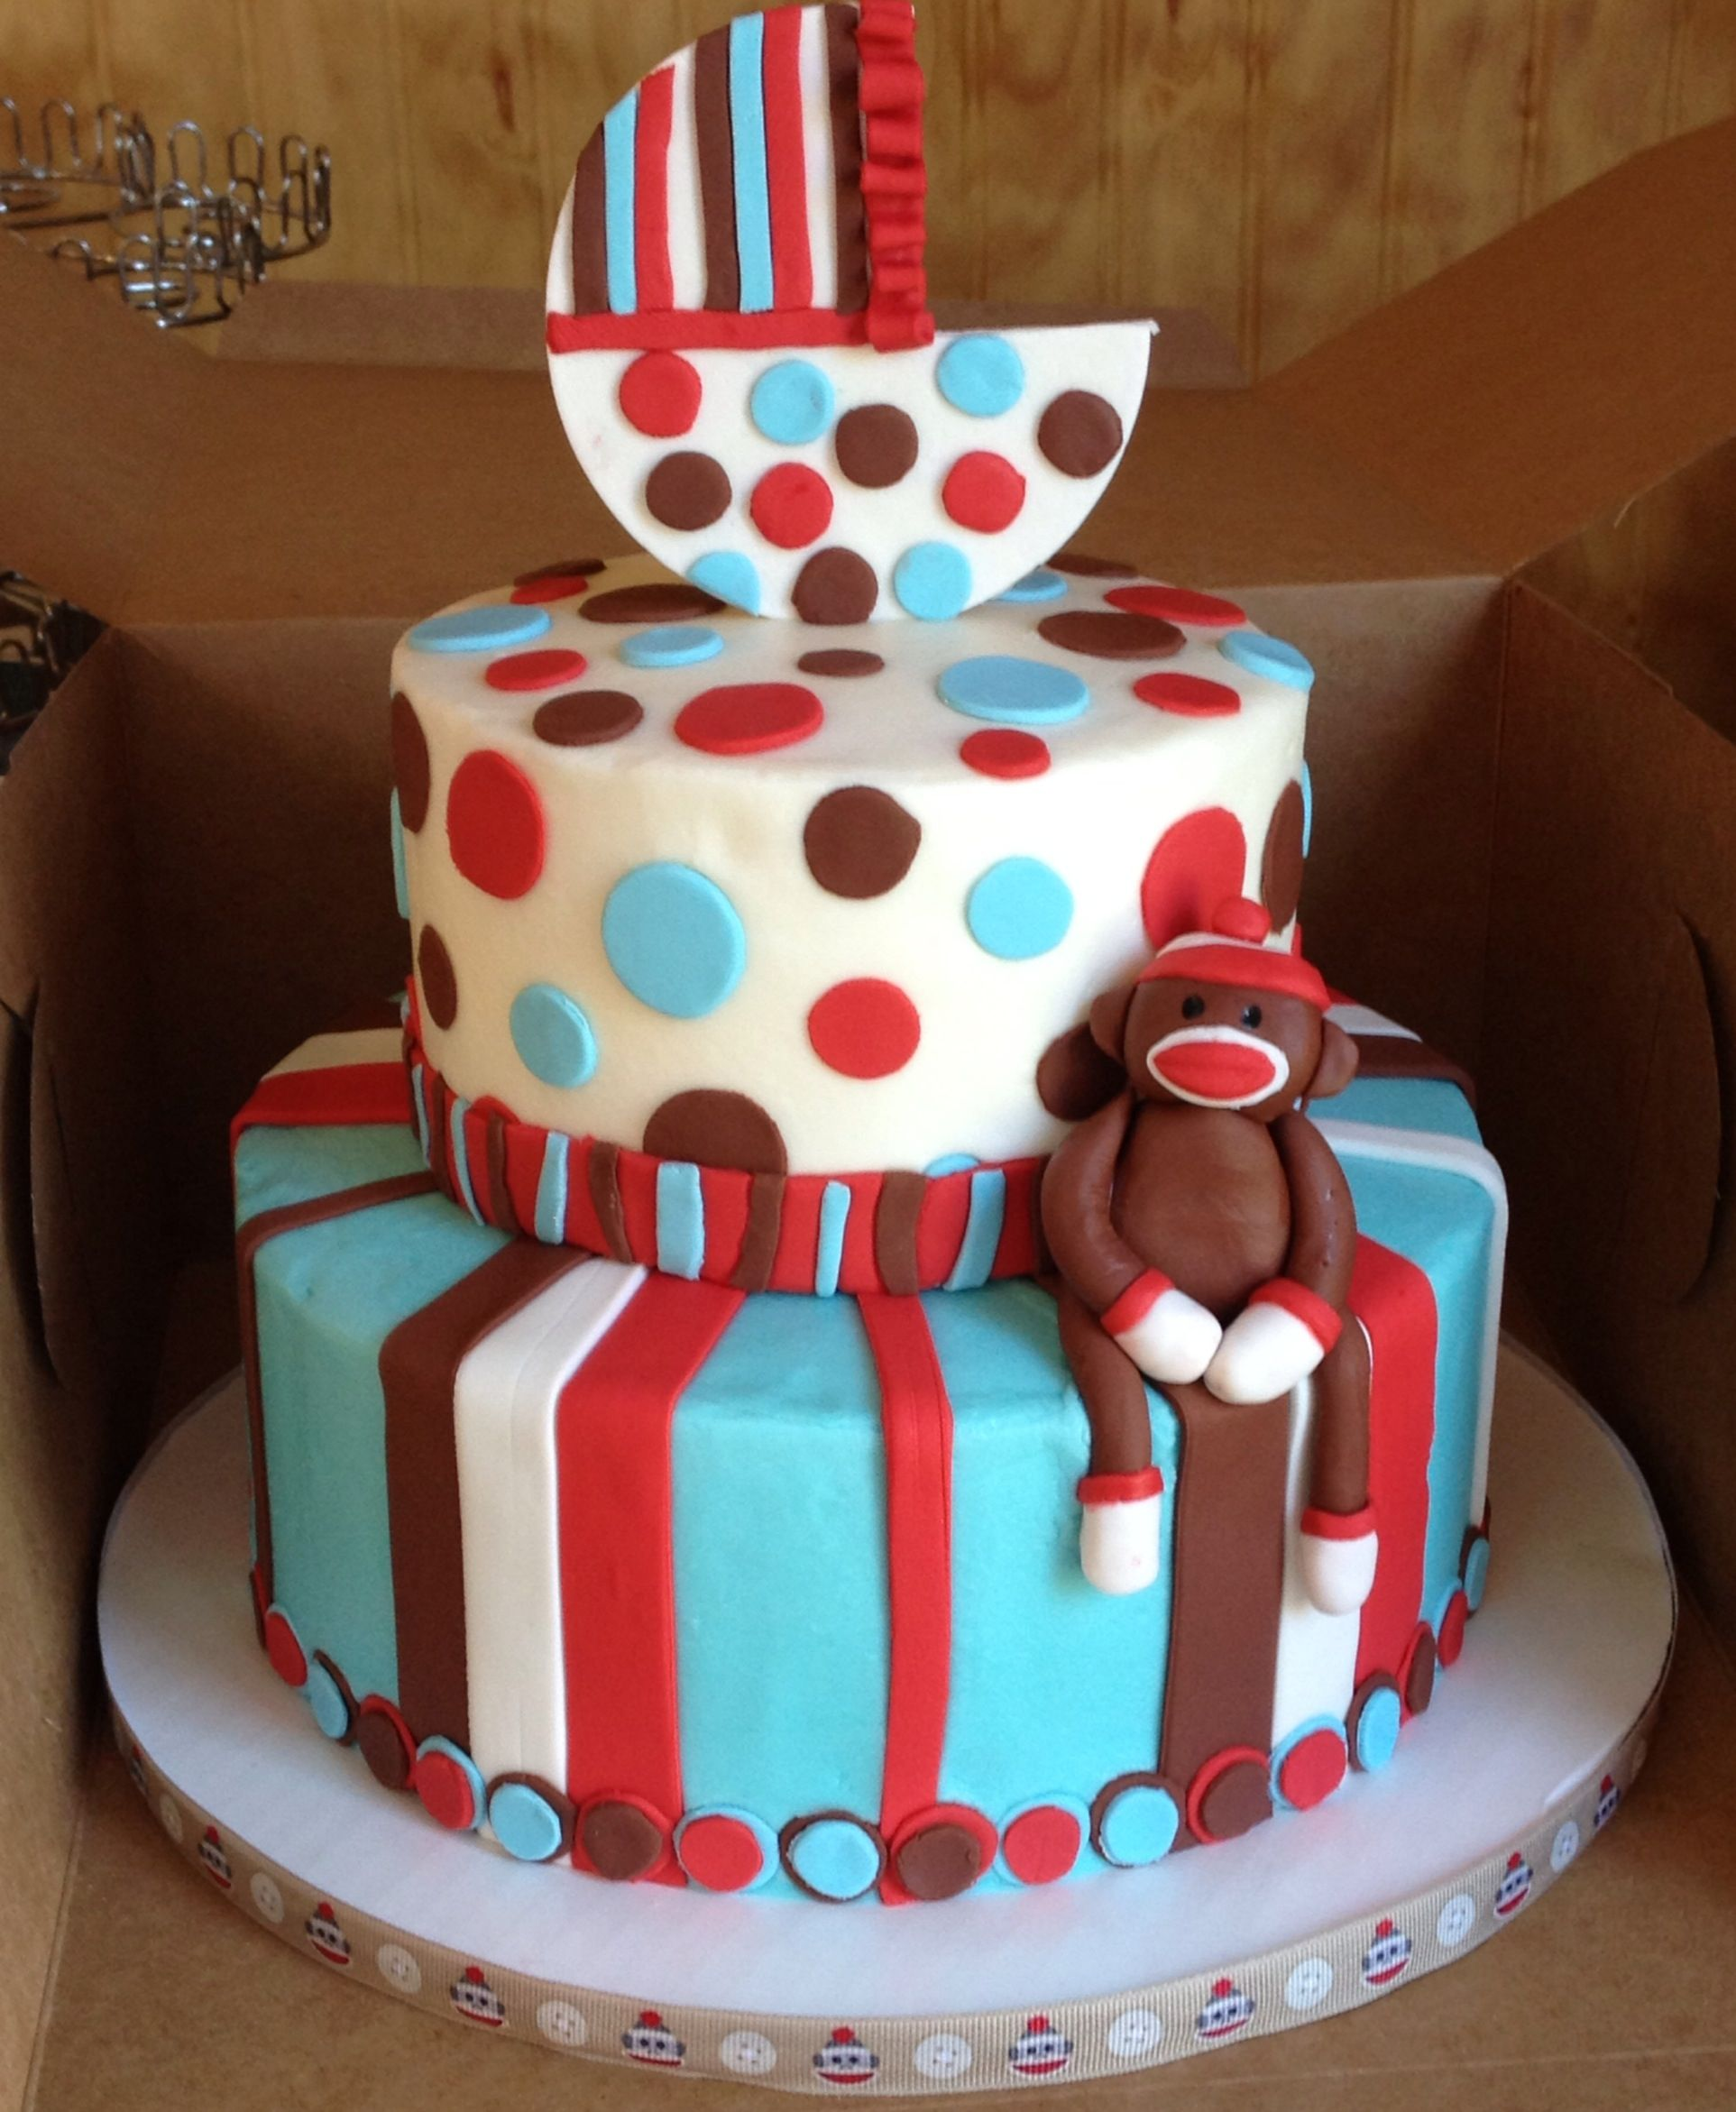 Cakes By Sarah's Sweets